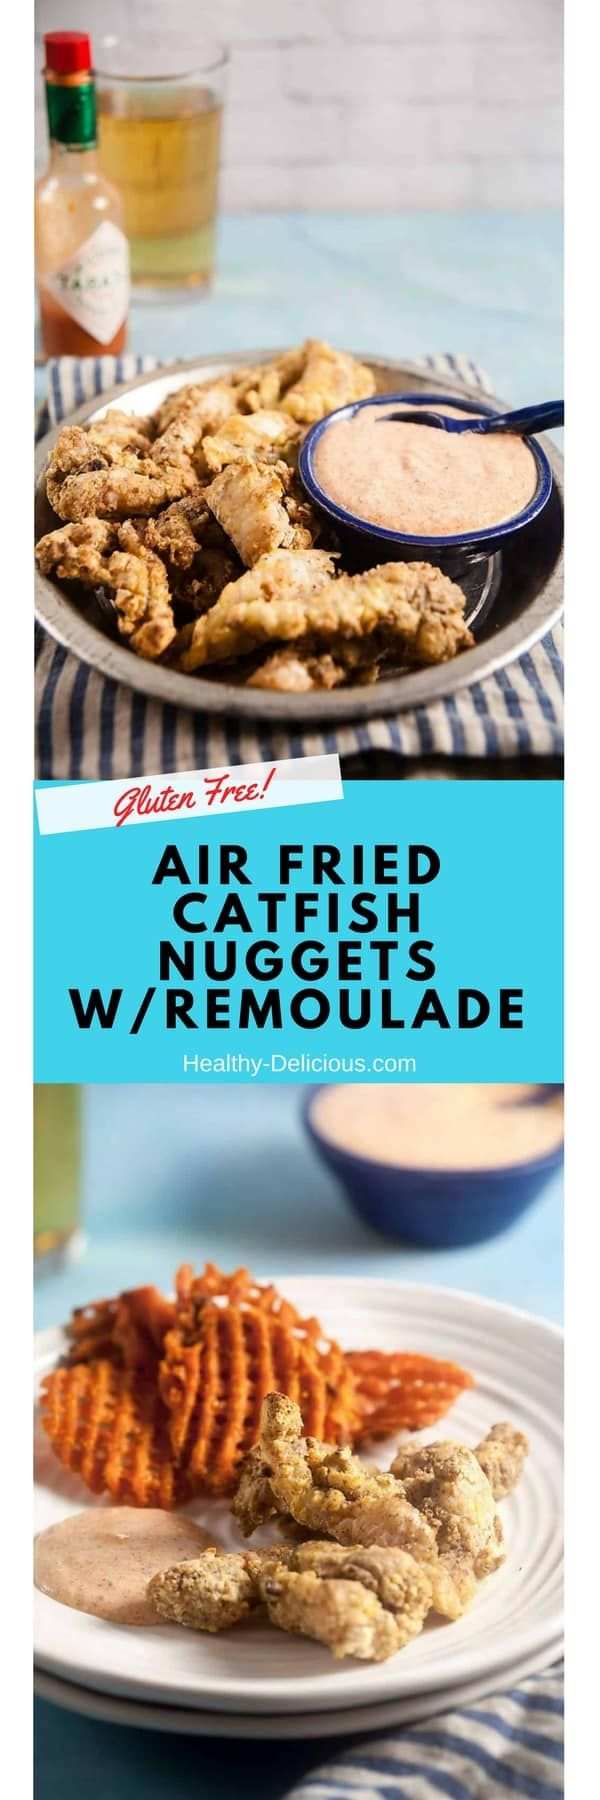 Pecan crusted catfish nuggets come out extra crispy when